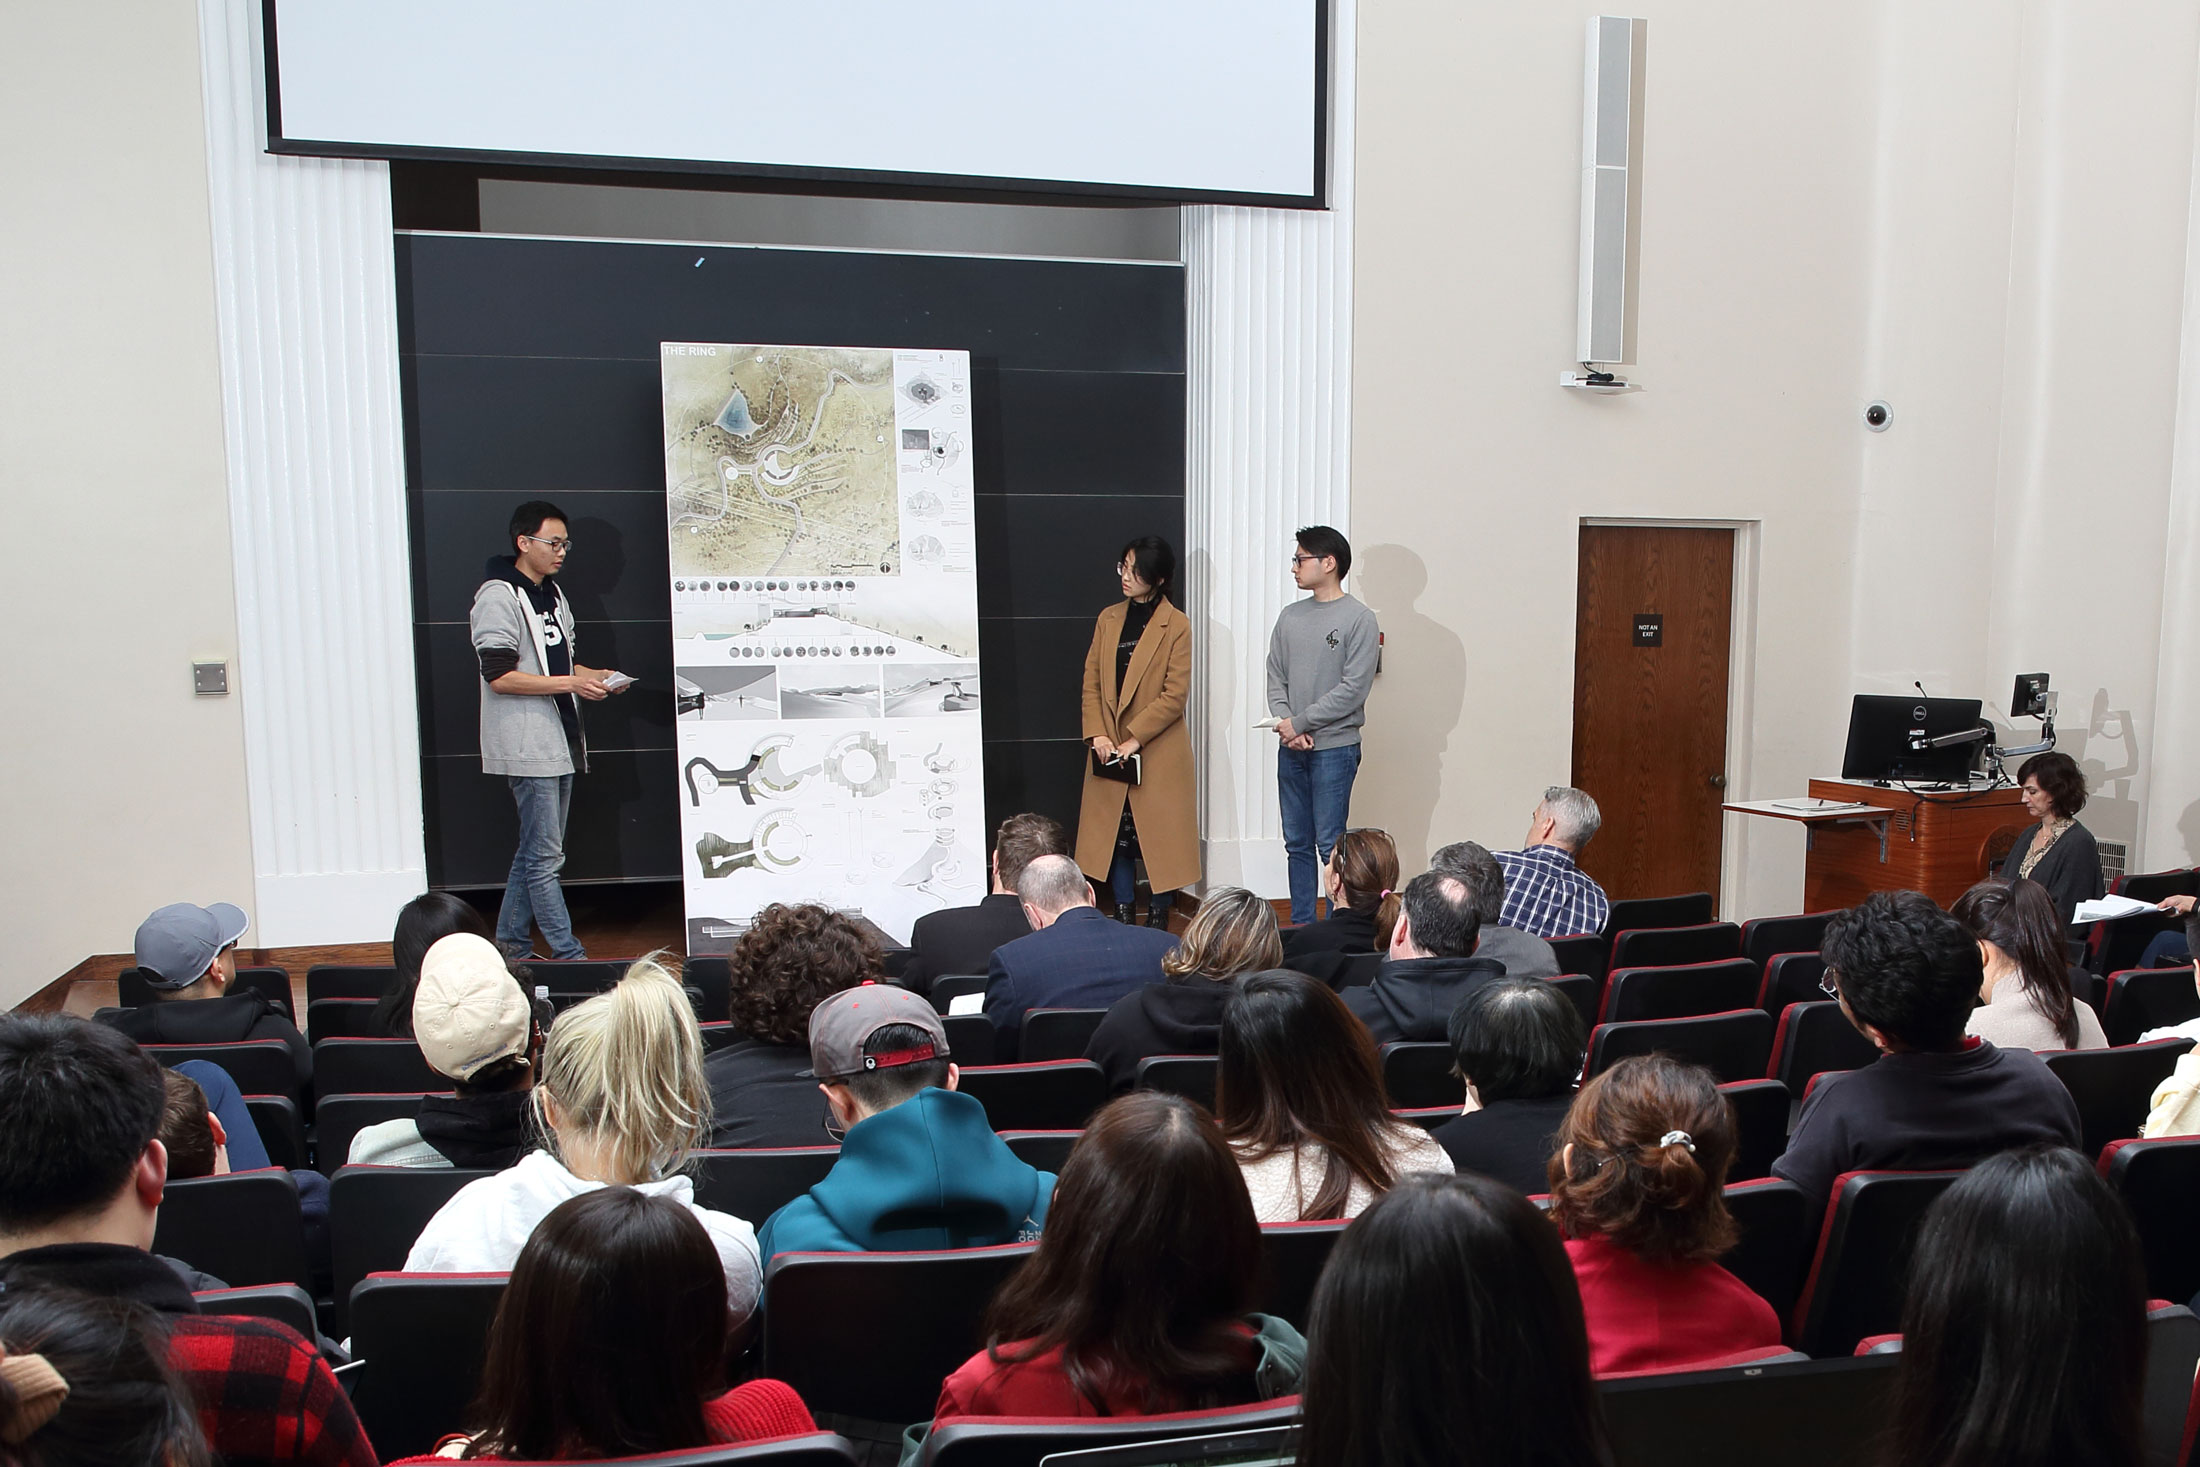 The 2020 Design Charrette was a week-long challenge, giving students the opportunity to work in teams of three to create innovative solutions to complex urban design issues.